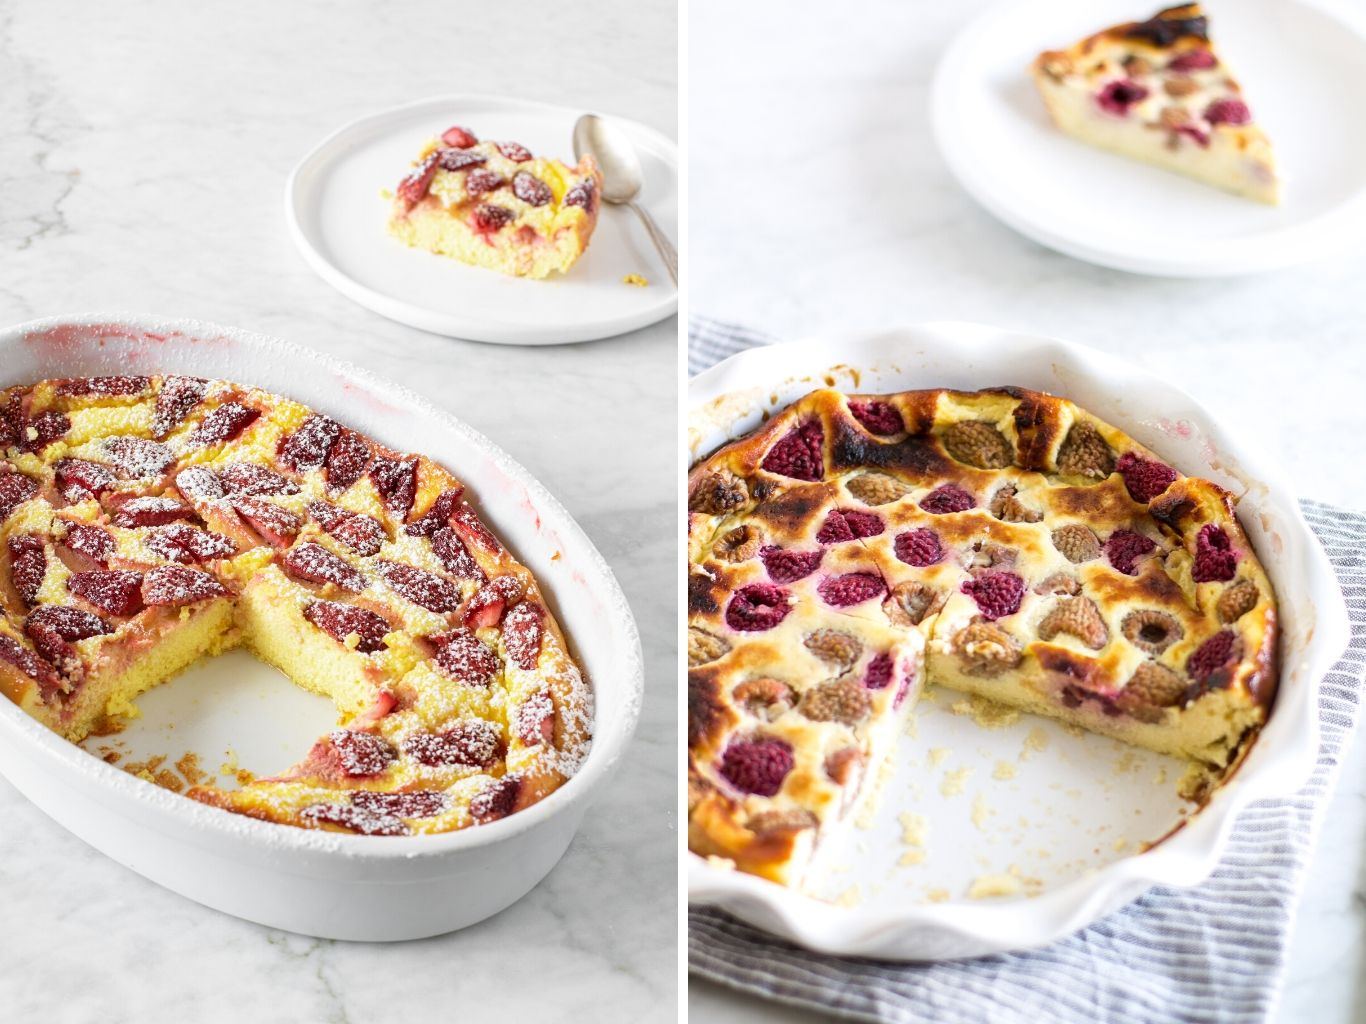 Raspberry Ricotta Soufflé and Strawberry Ricotta Soufflé baked in white 1 quart dishes | verygoodcook.com